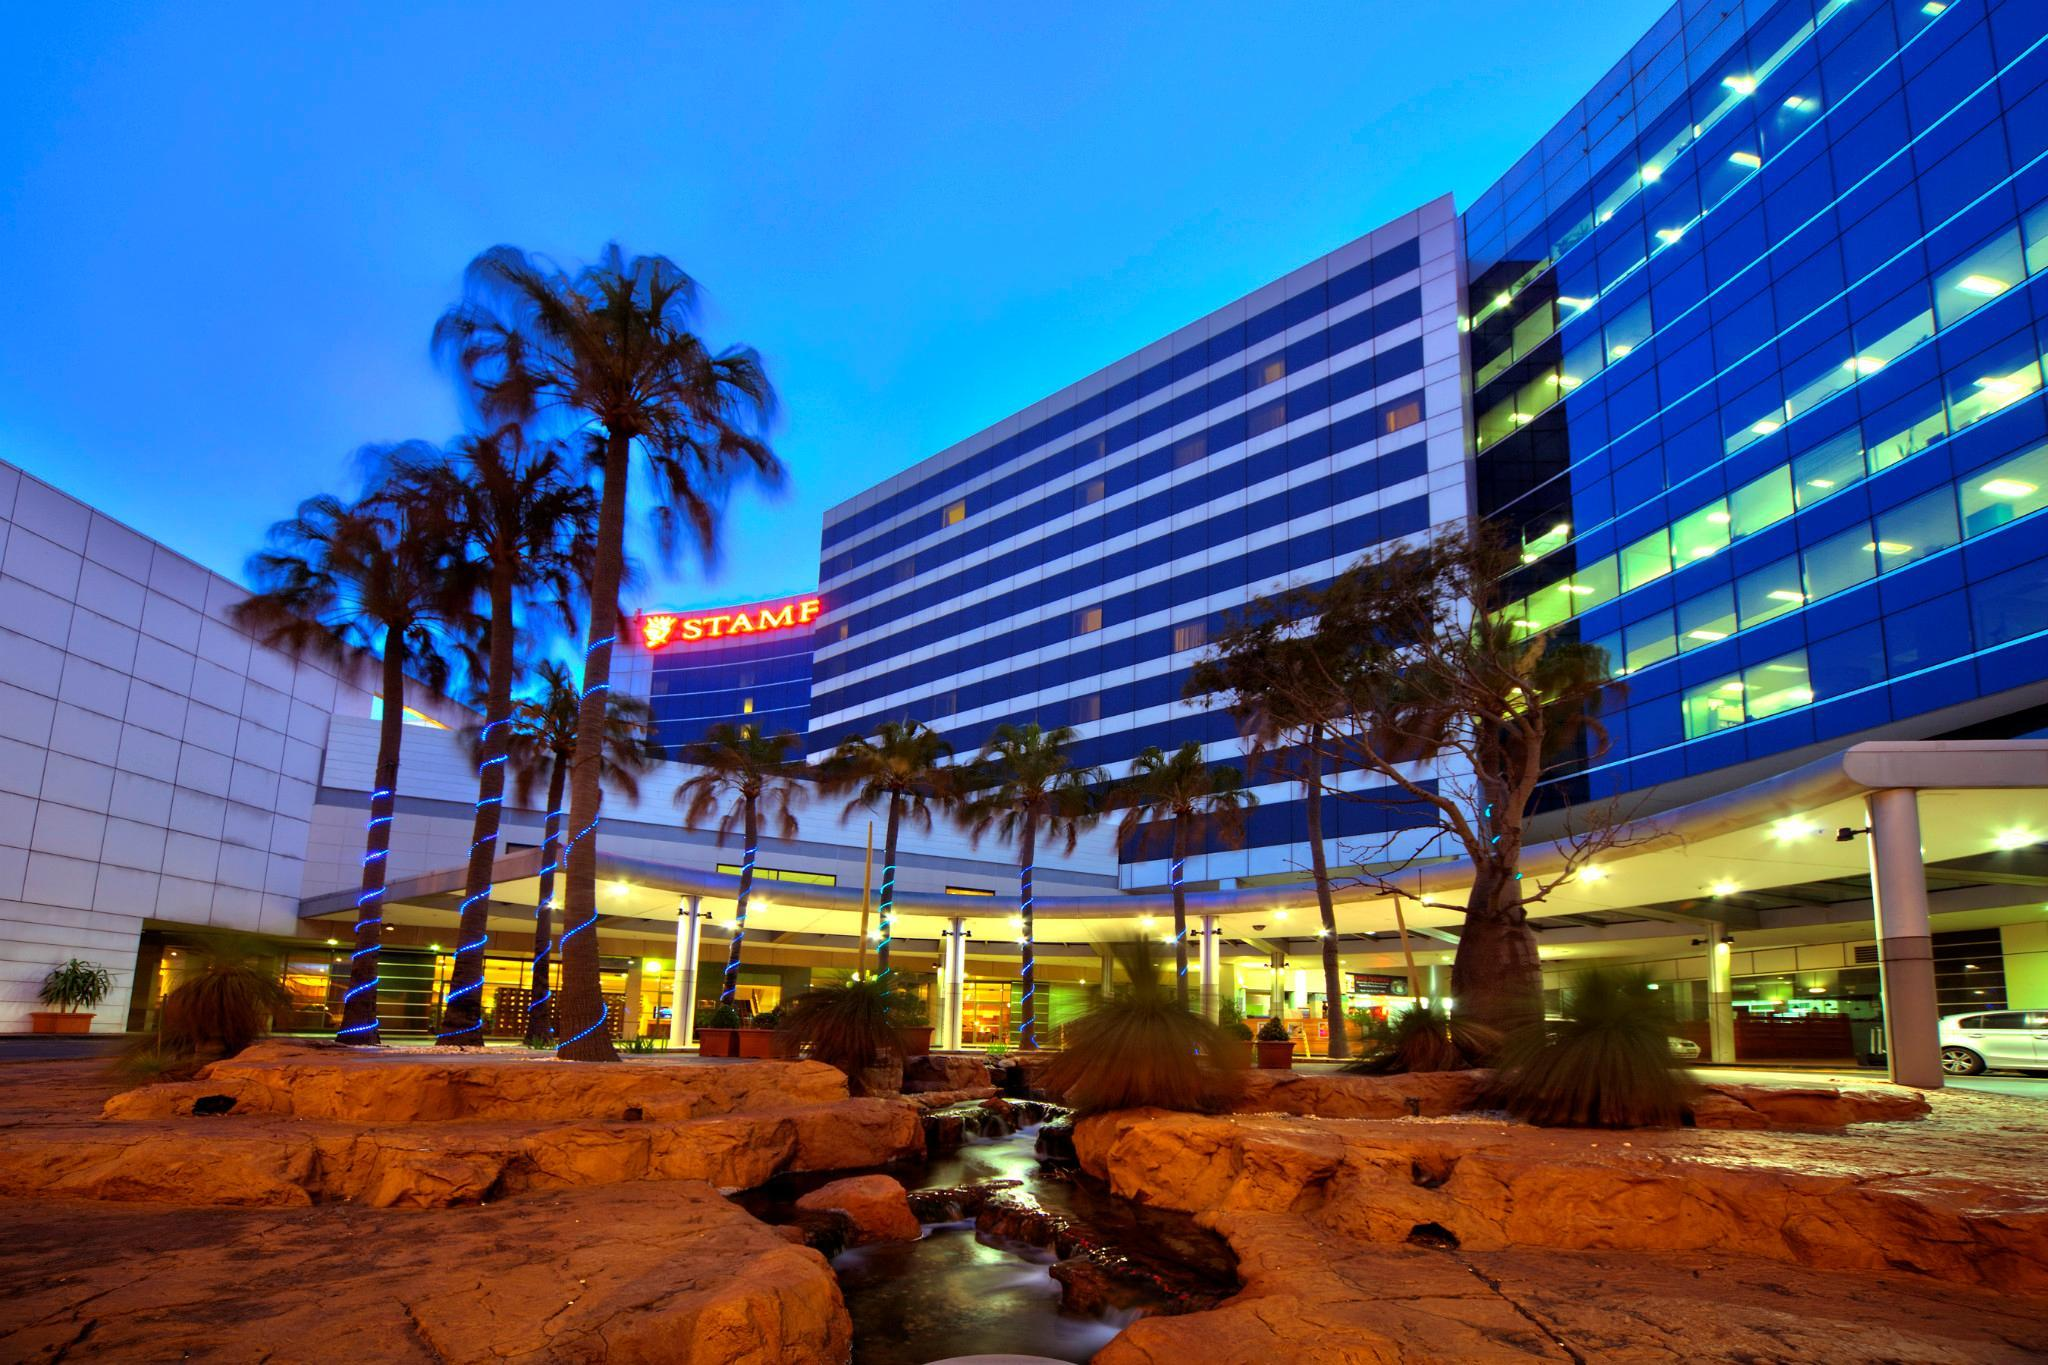 Stamford Plaza Sydney Airport Hotel & Conference Centre